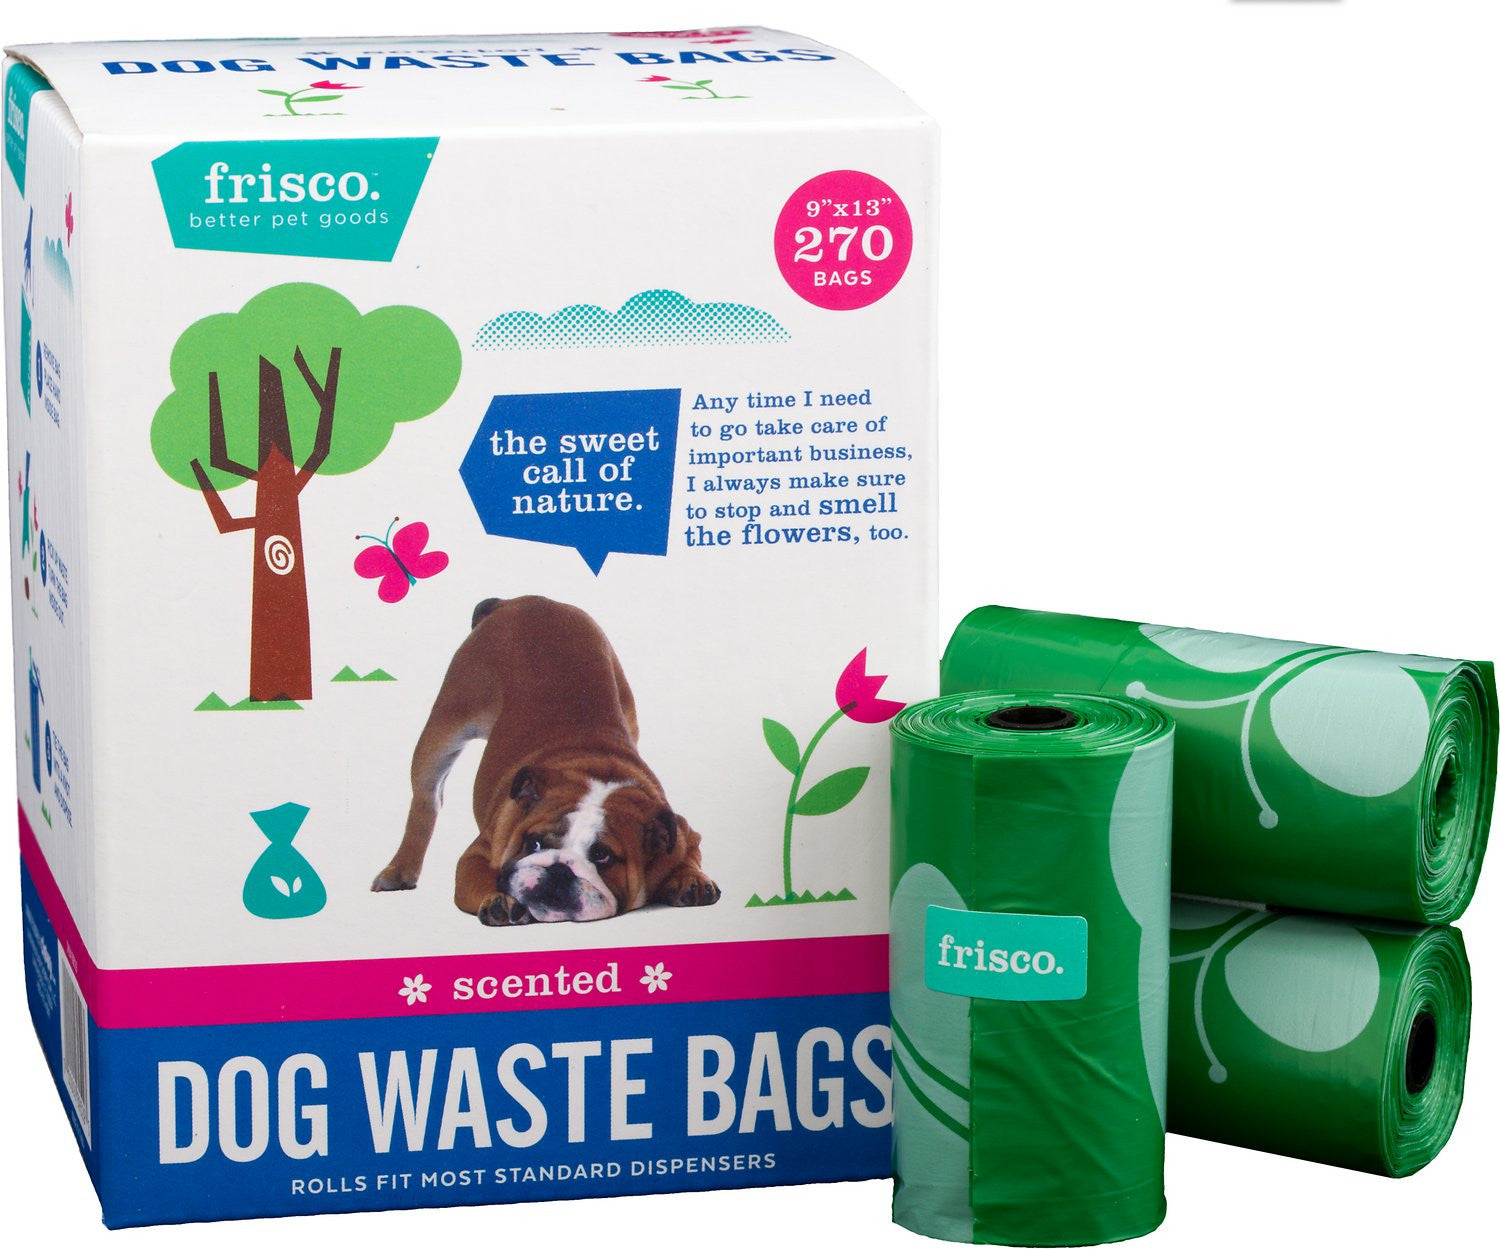 Frisco Refill Dog Poop Bags, Scented, 270 count pics